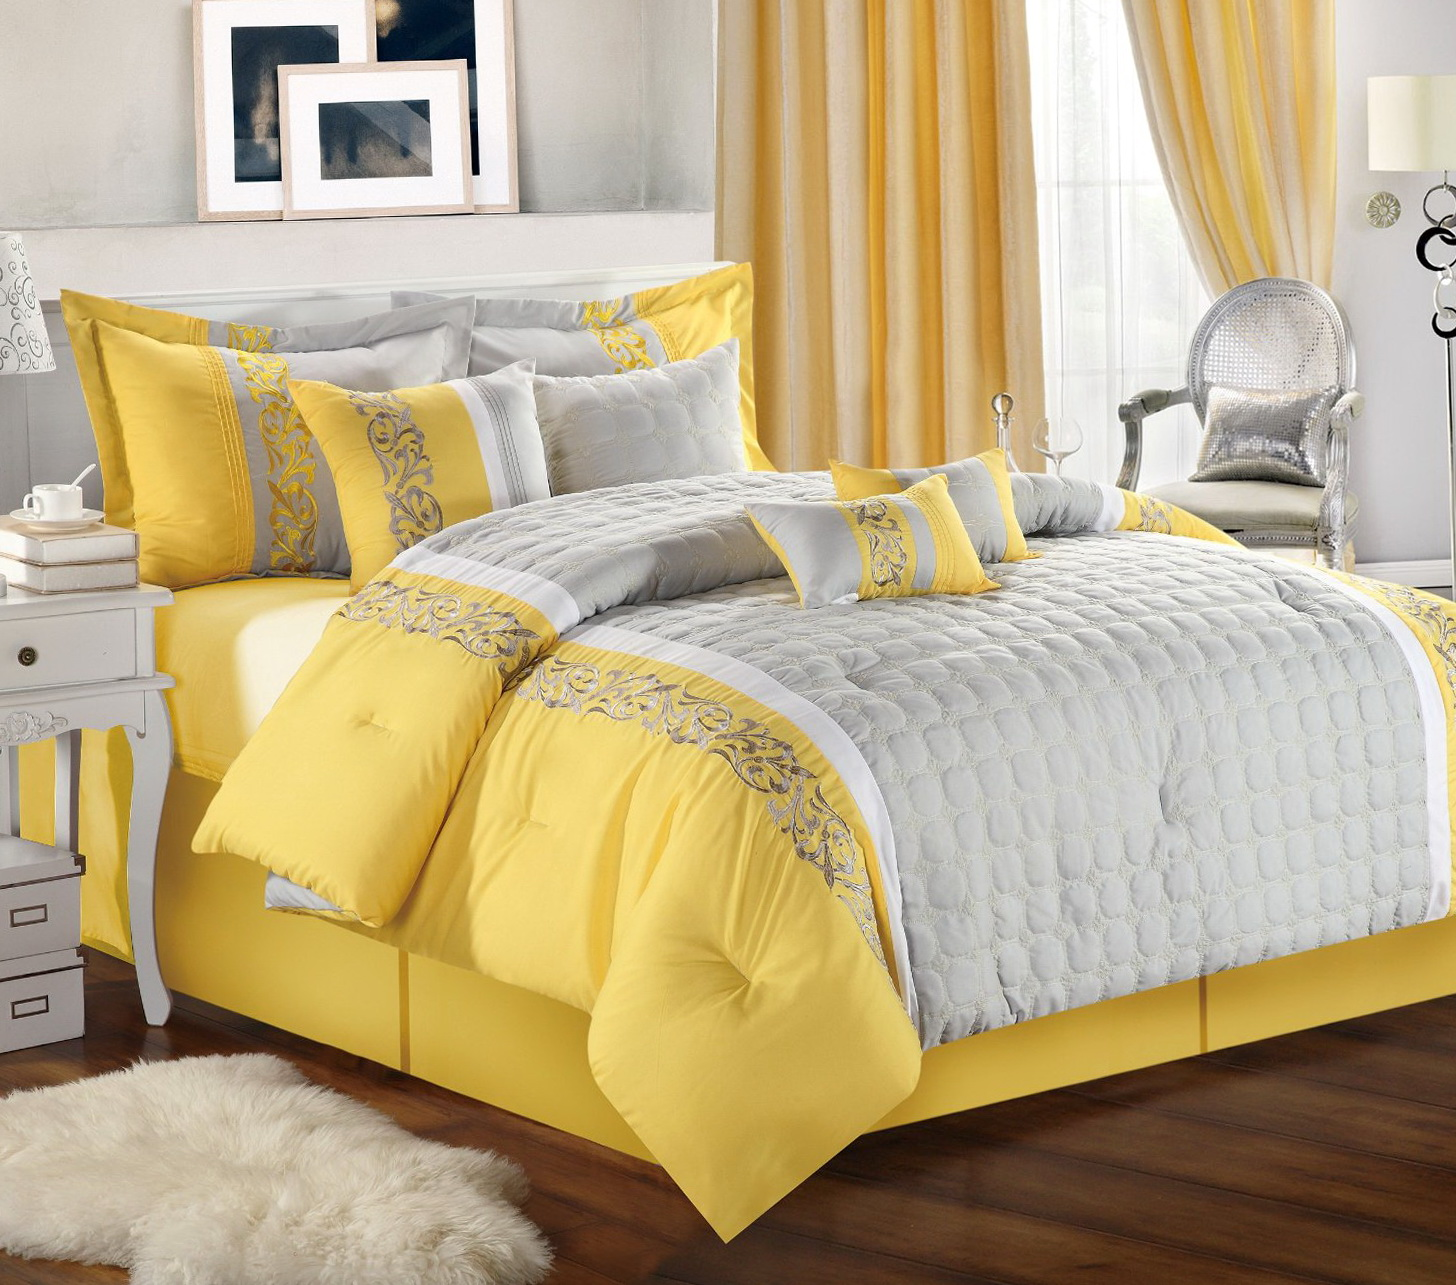 Gray And Yellow Bedding Kohls